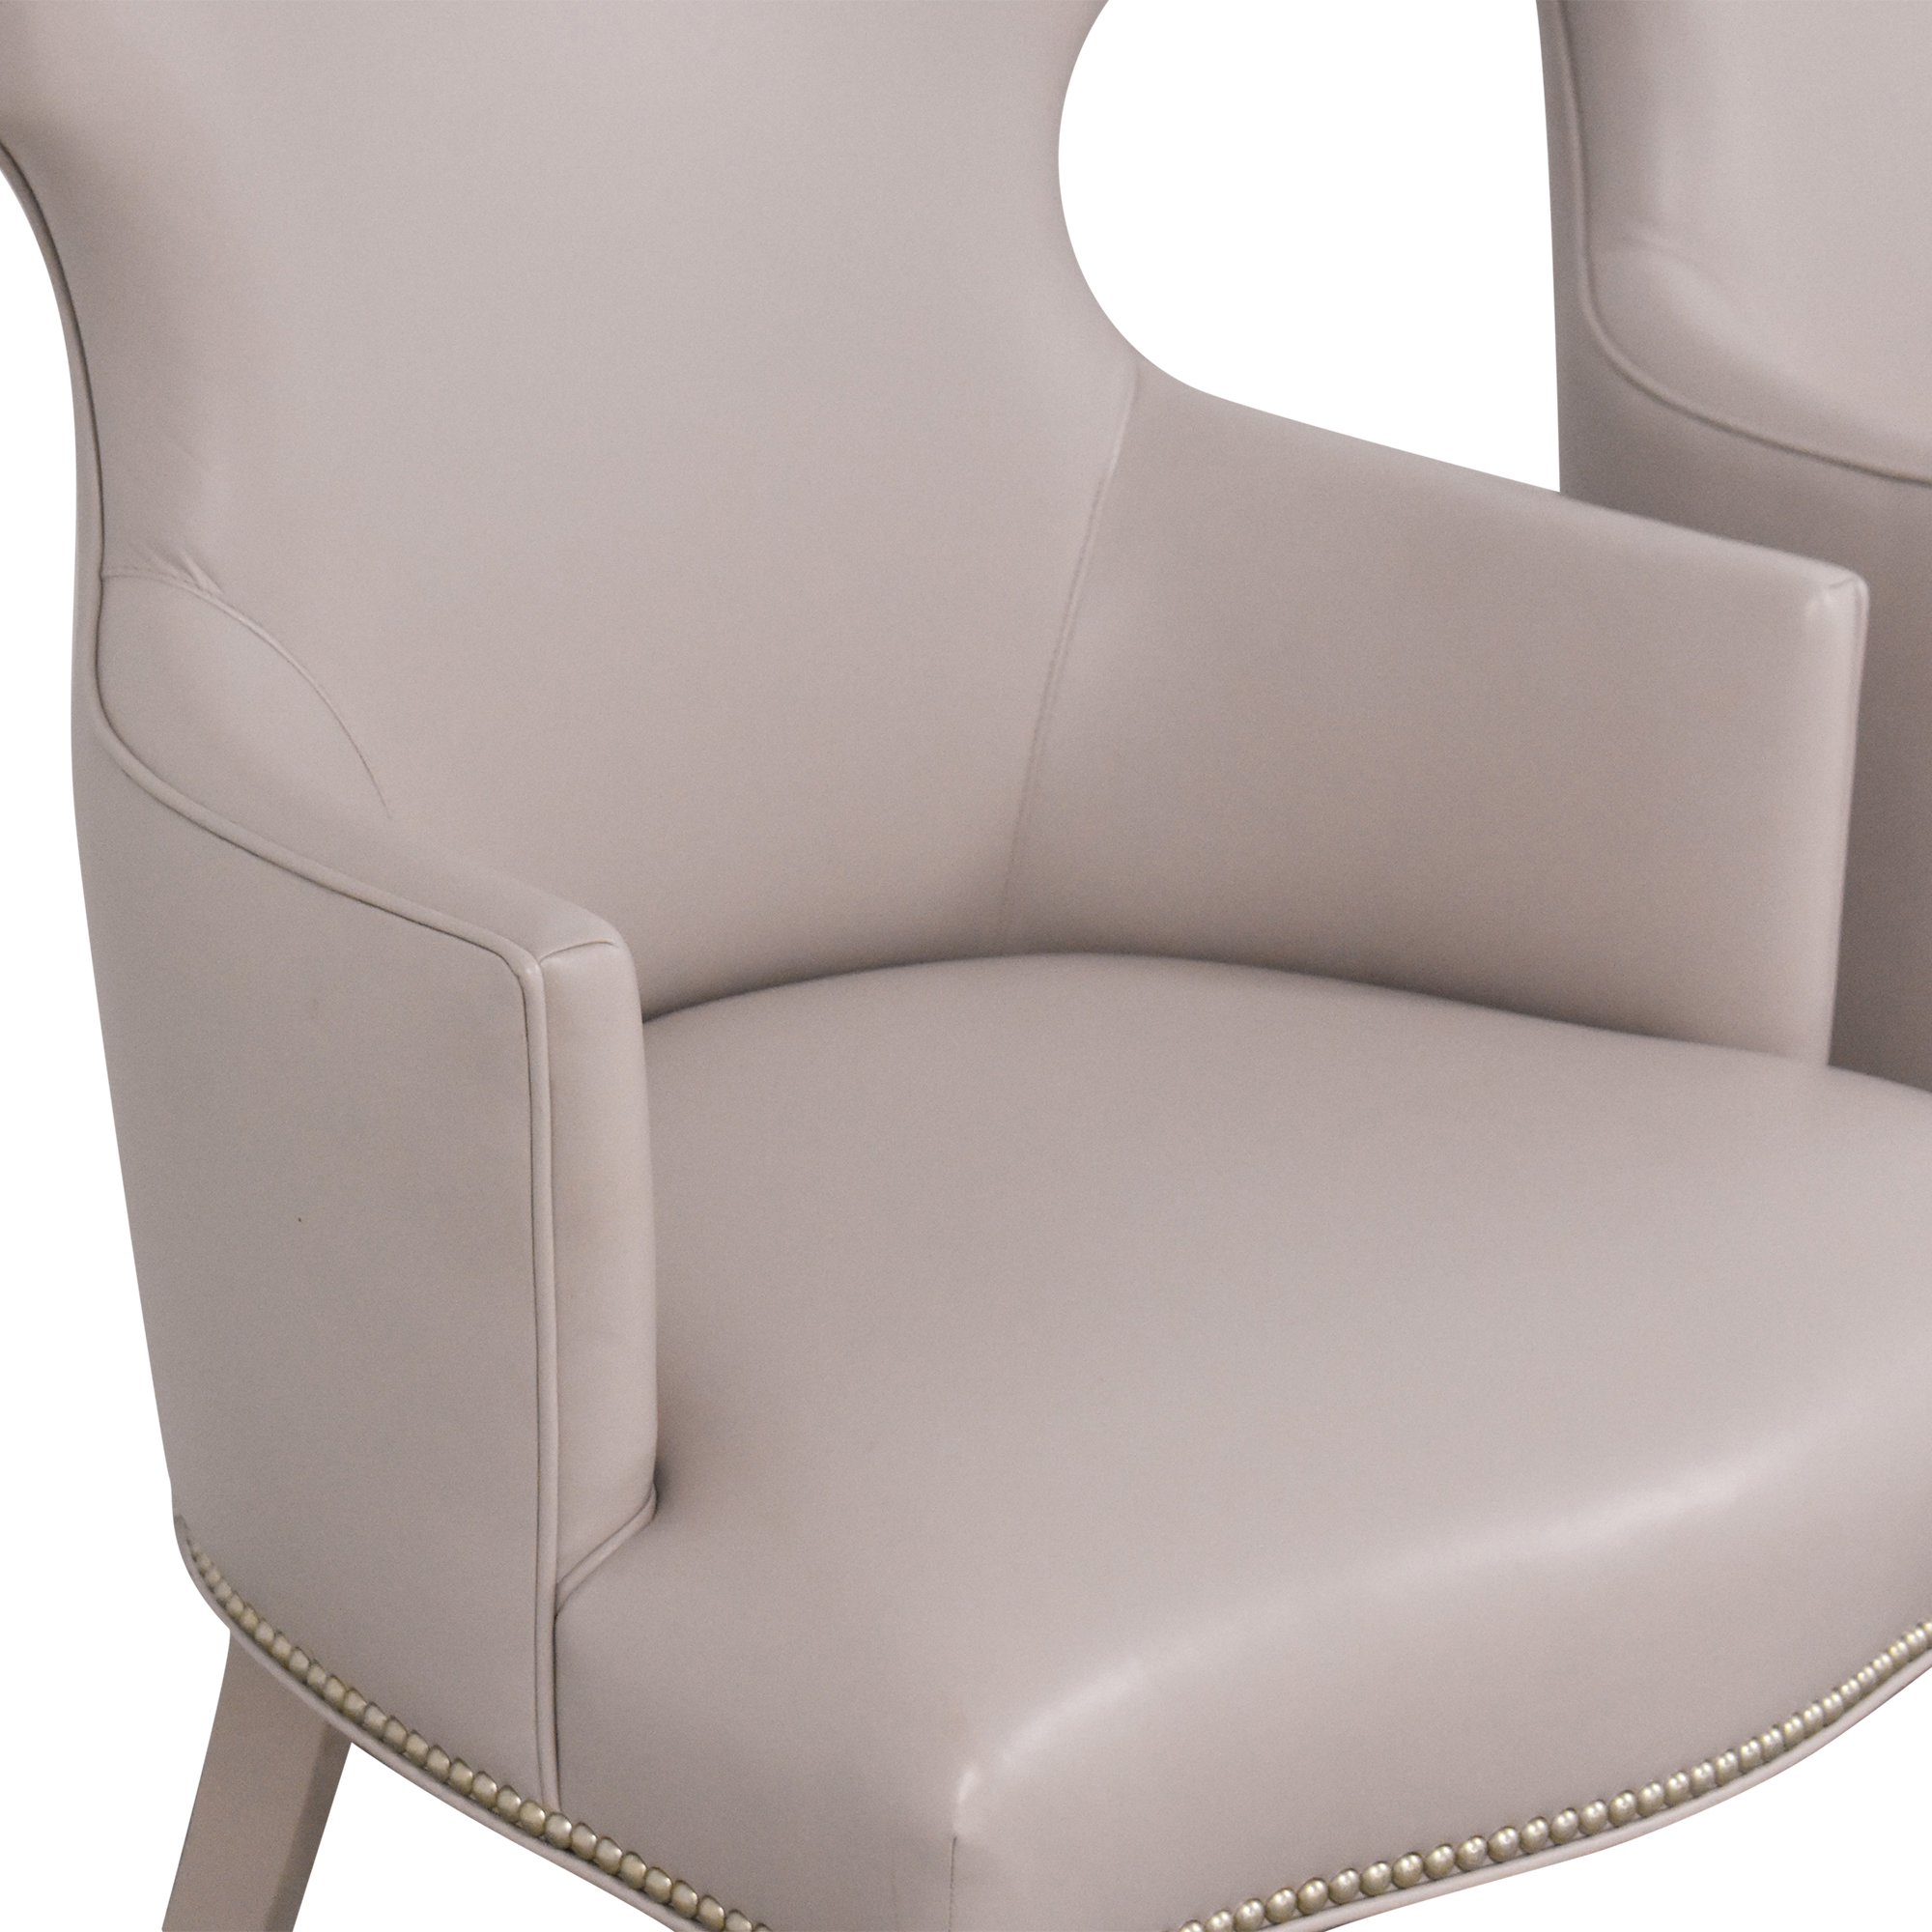 Artistic Frame Artistic Frame Custom Wing Back Dining Chairs Dining Chairs